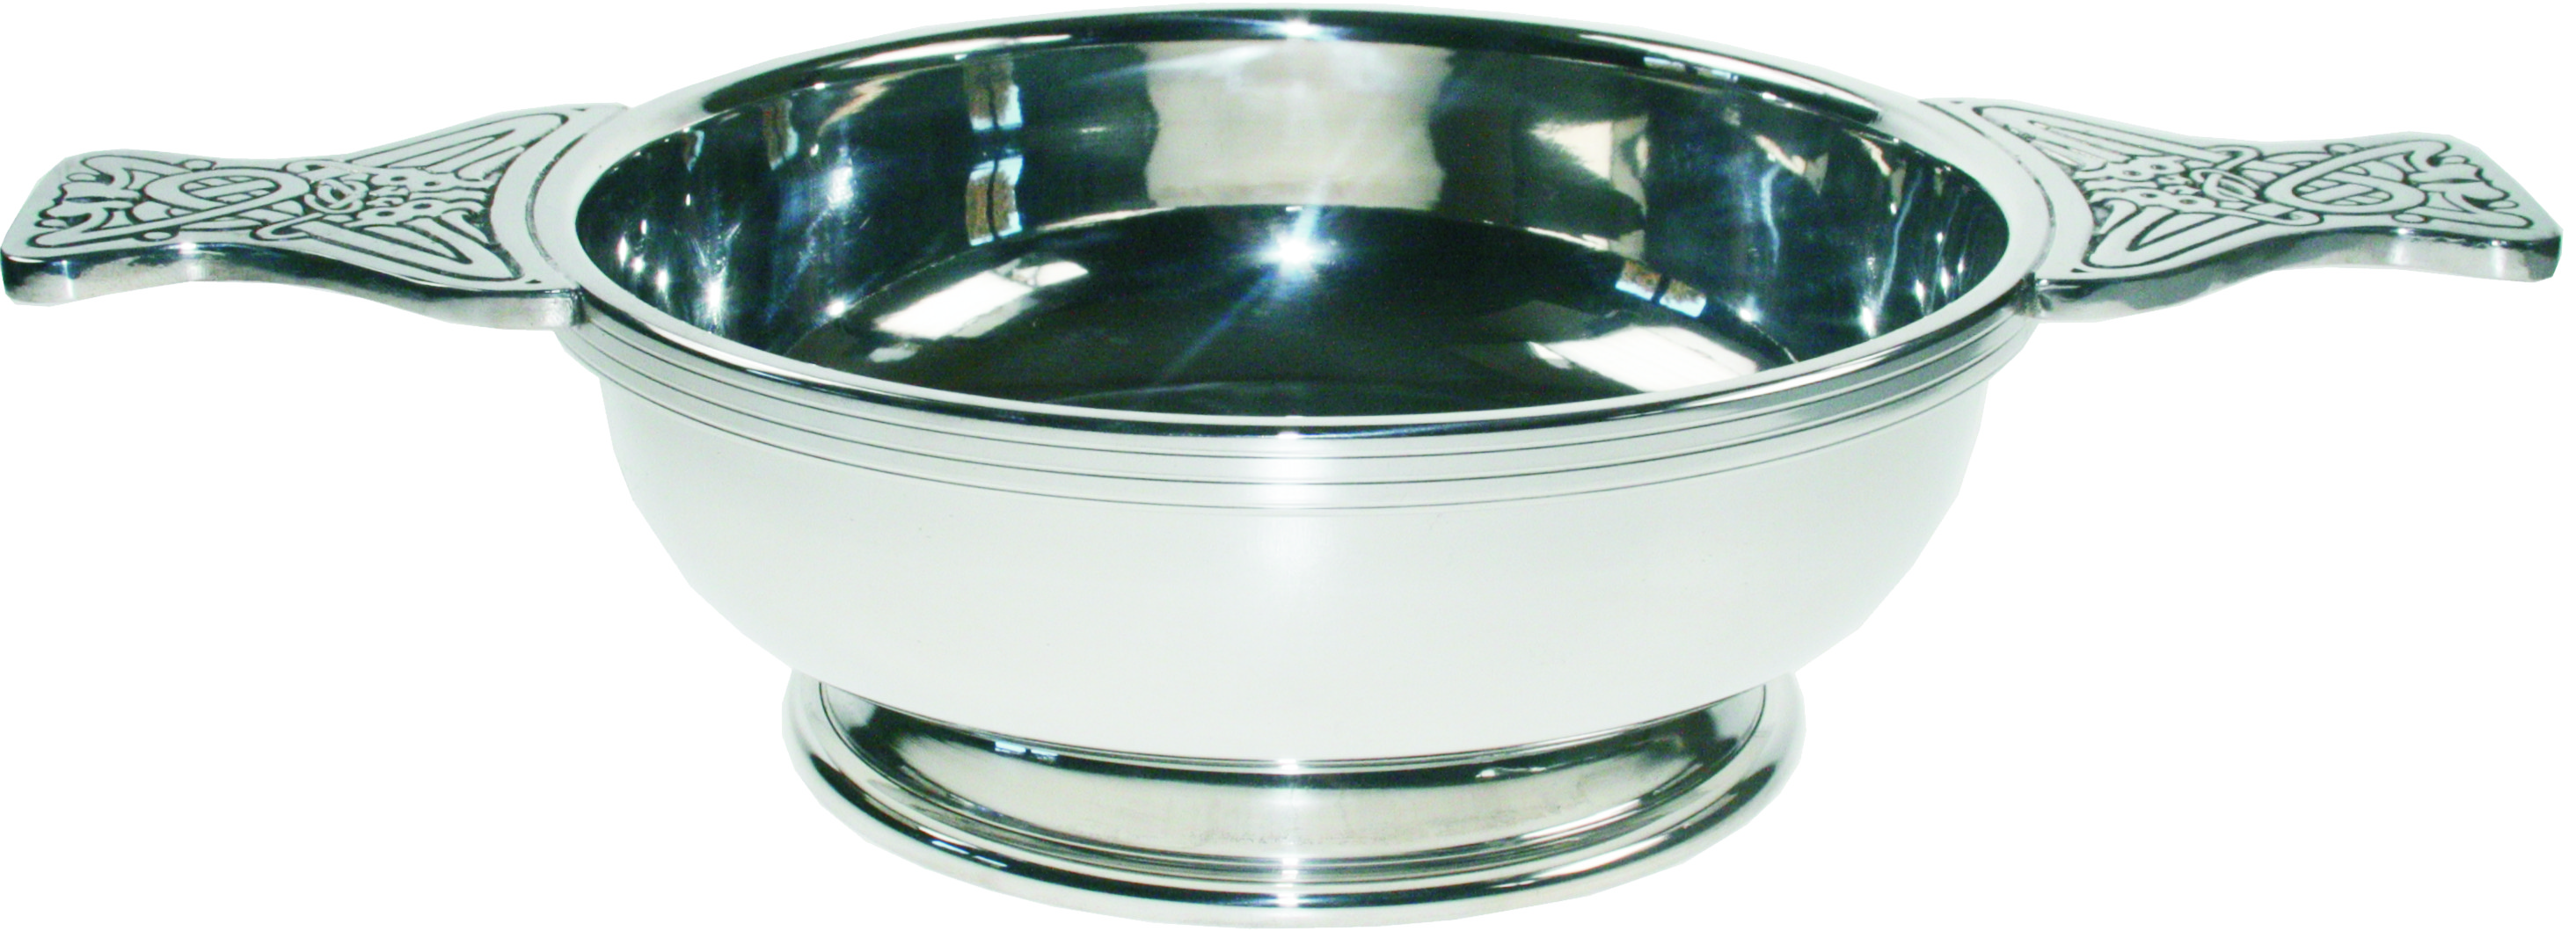 "Pewter Quaich Bowl with Celtic Patterned Handle 17cm (6.75"")"